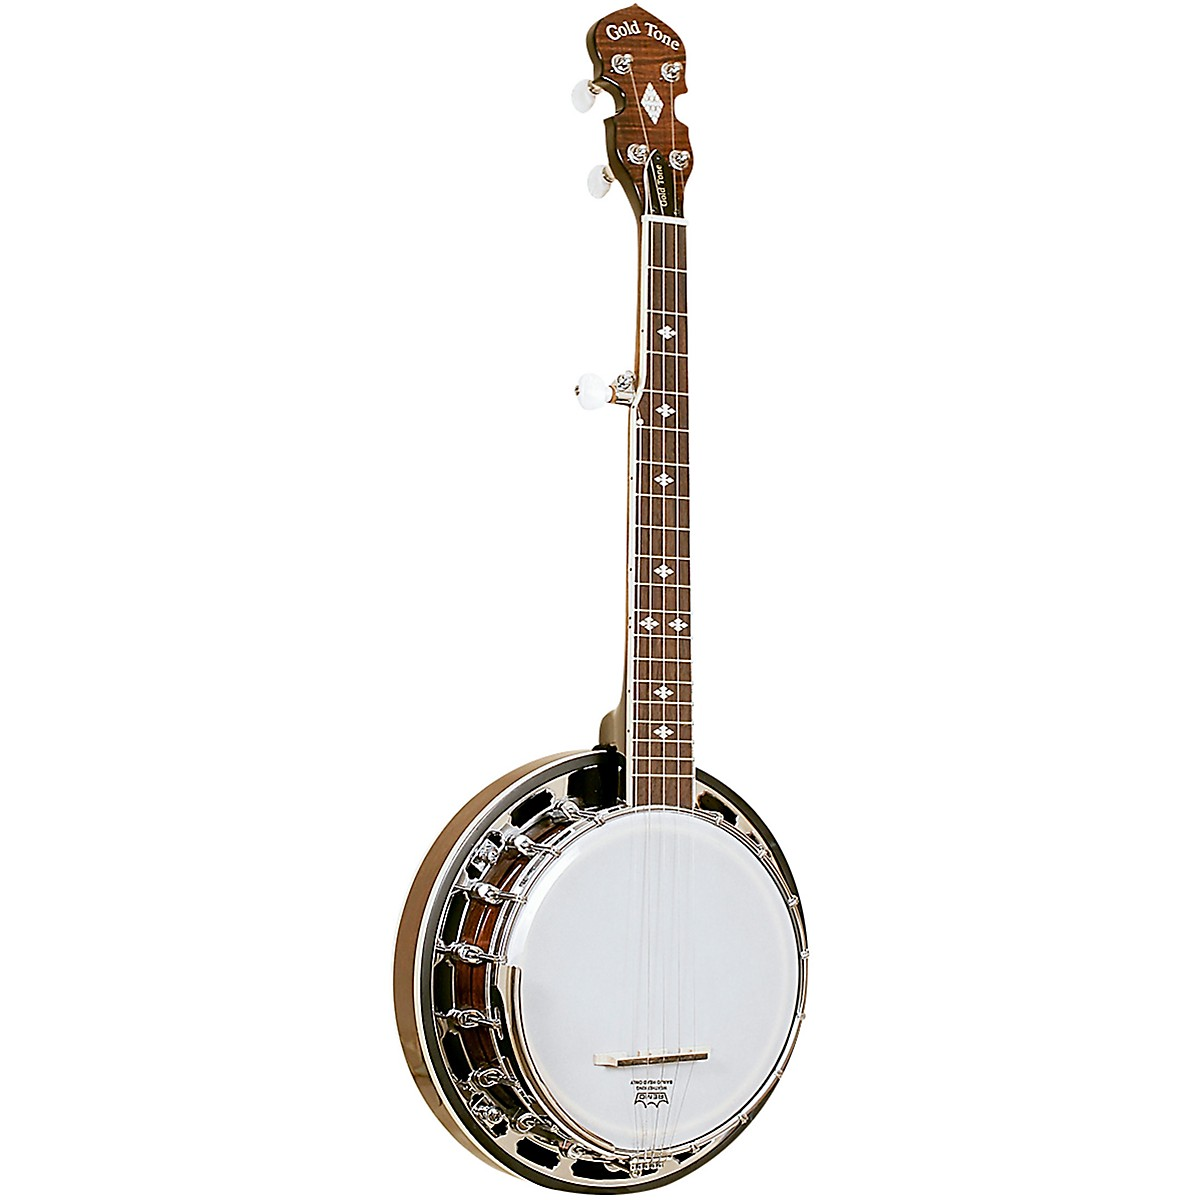 Gold Tone Left-Handed Bluegrass Mini Banjo